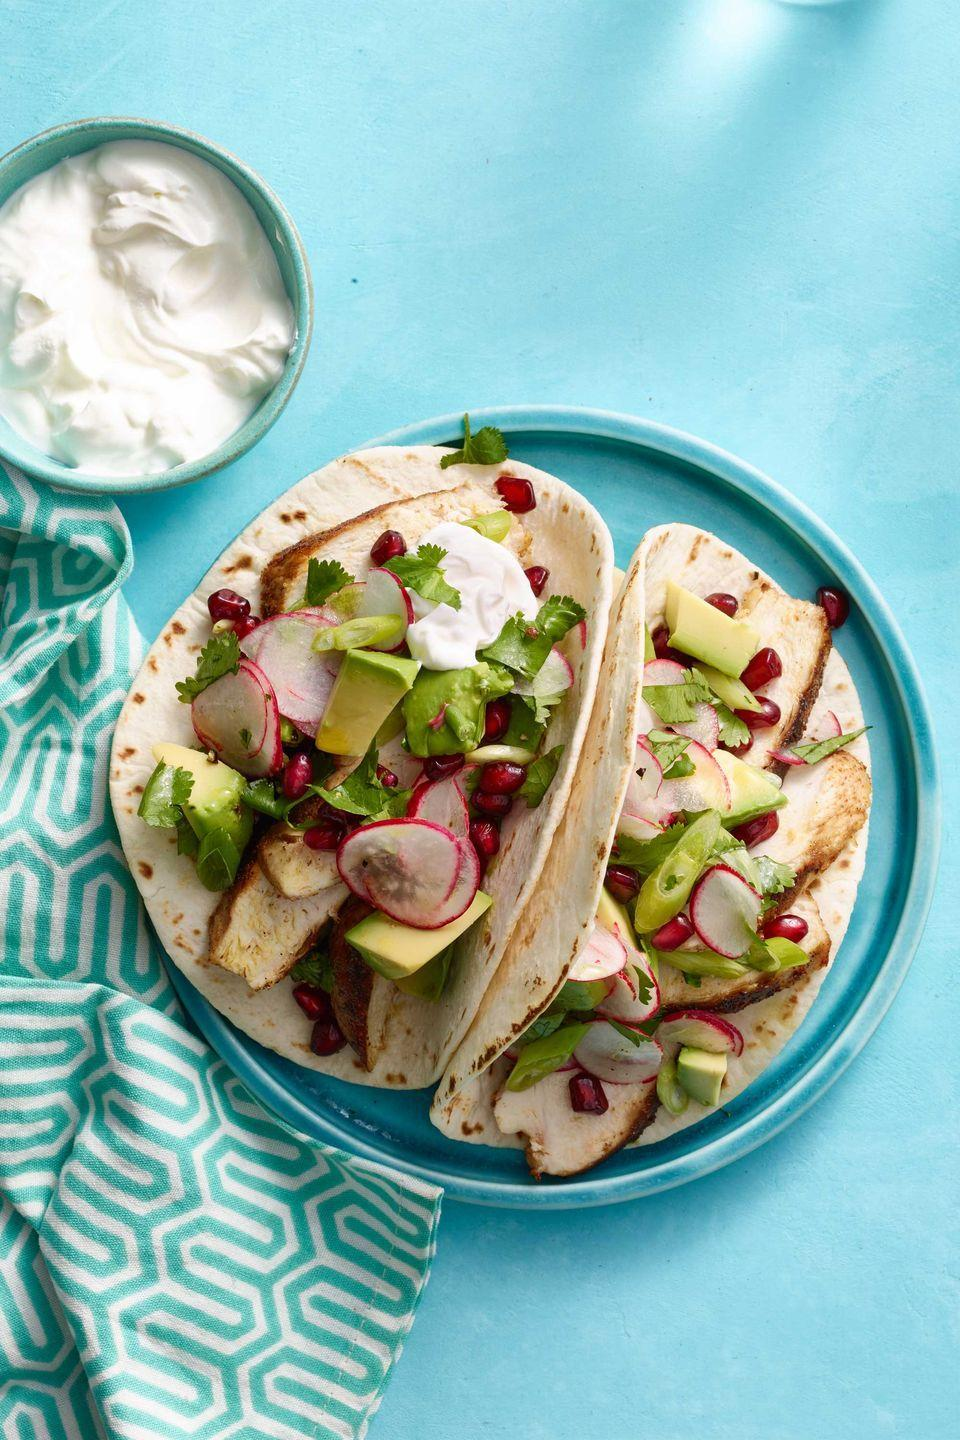 """<p>Avocado is packed with monounsaturated fats that help reduce inflammation and will help you feel fuller longer.</p><p><strong><a href=""""https://www.countryliving.com/food-drinks/recipes/a33282/spiced-chicken-tacos-avocado-pomegranate-salsa-recipe-wdy0315/"""" rel=""""nofollow noopener"""" target=""""_blank"""" data-ylk=""""slk:Get the recipe"""" class=""""link rapid-noclick-resp"""">Get the recipe</a>.</strong></p>"""